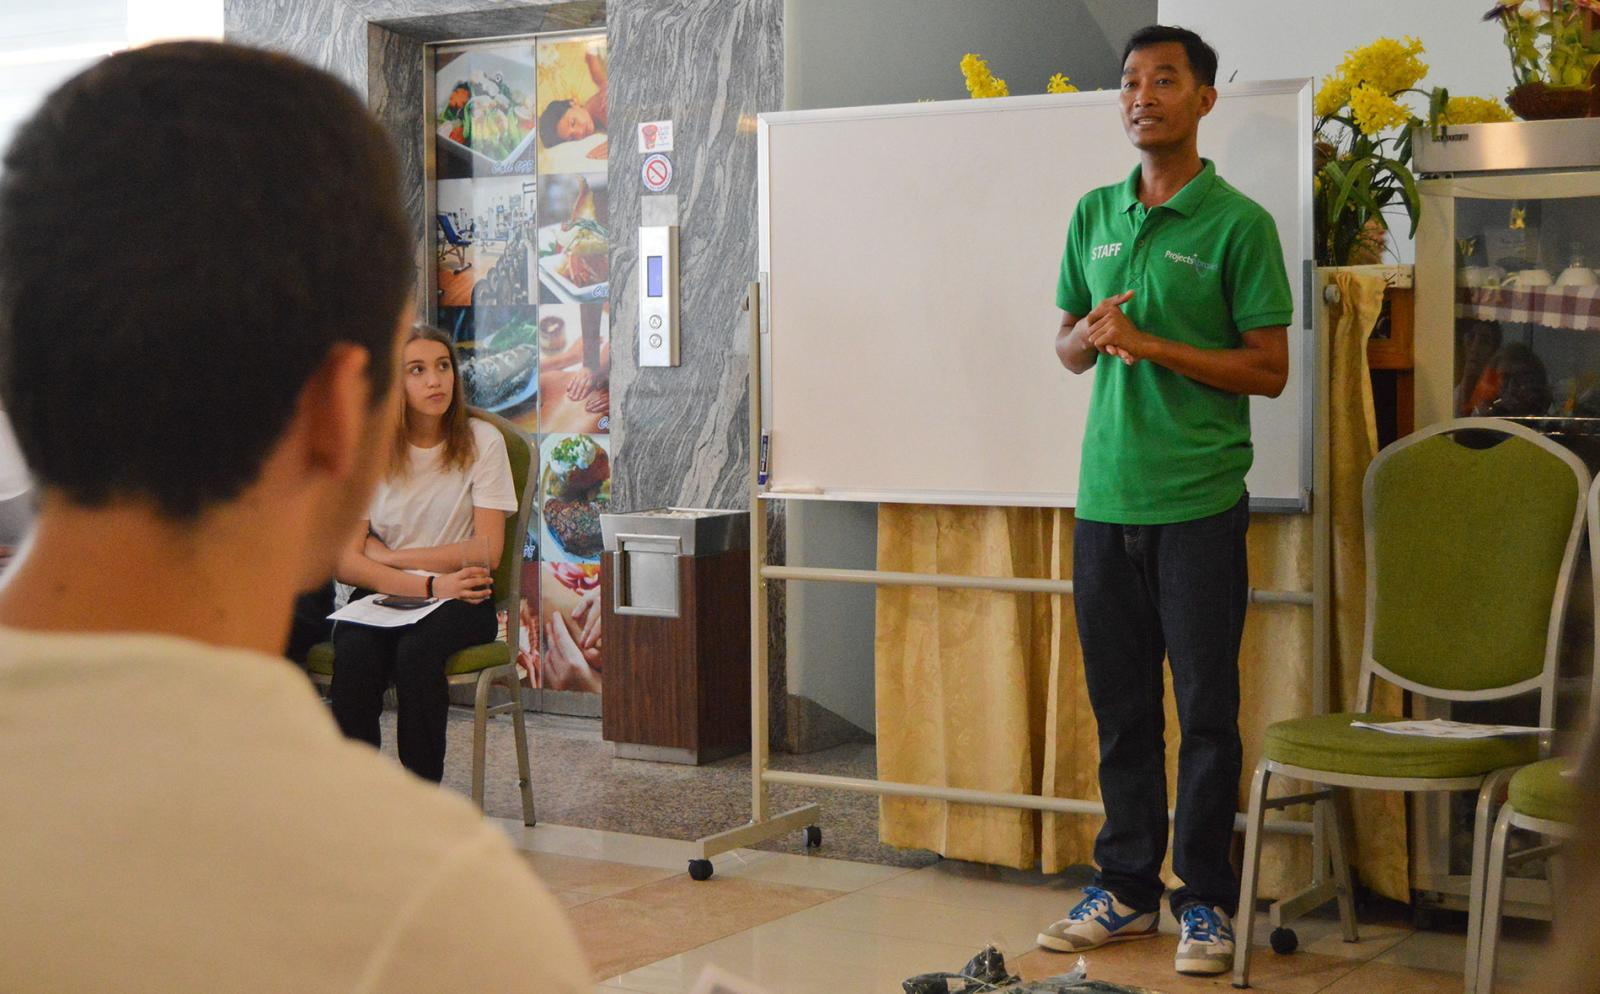 Projects Abroad Volunteers being introduced to local culture and language after their arrival in Cambodia